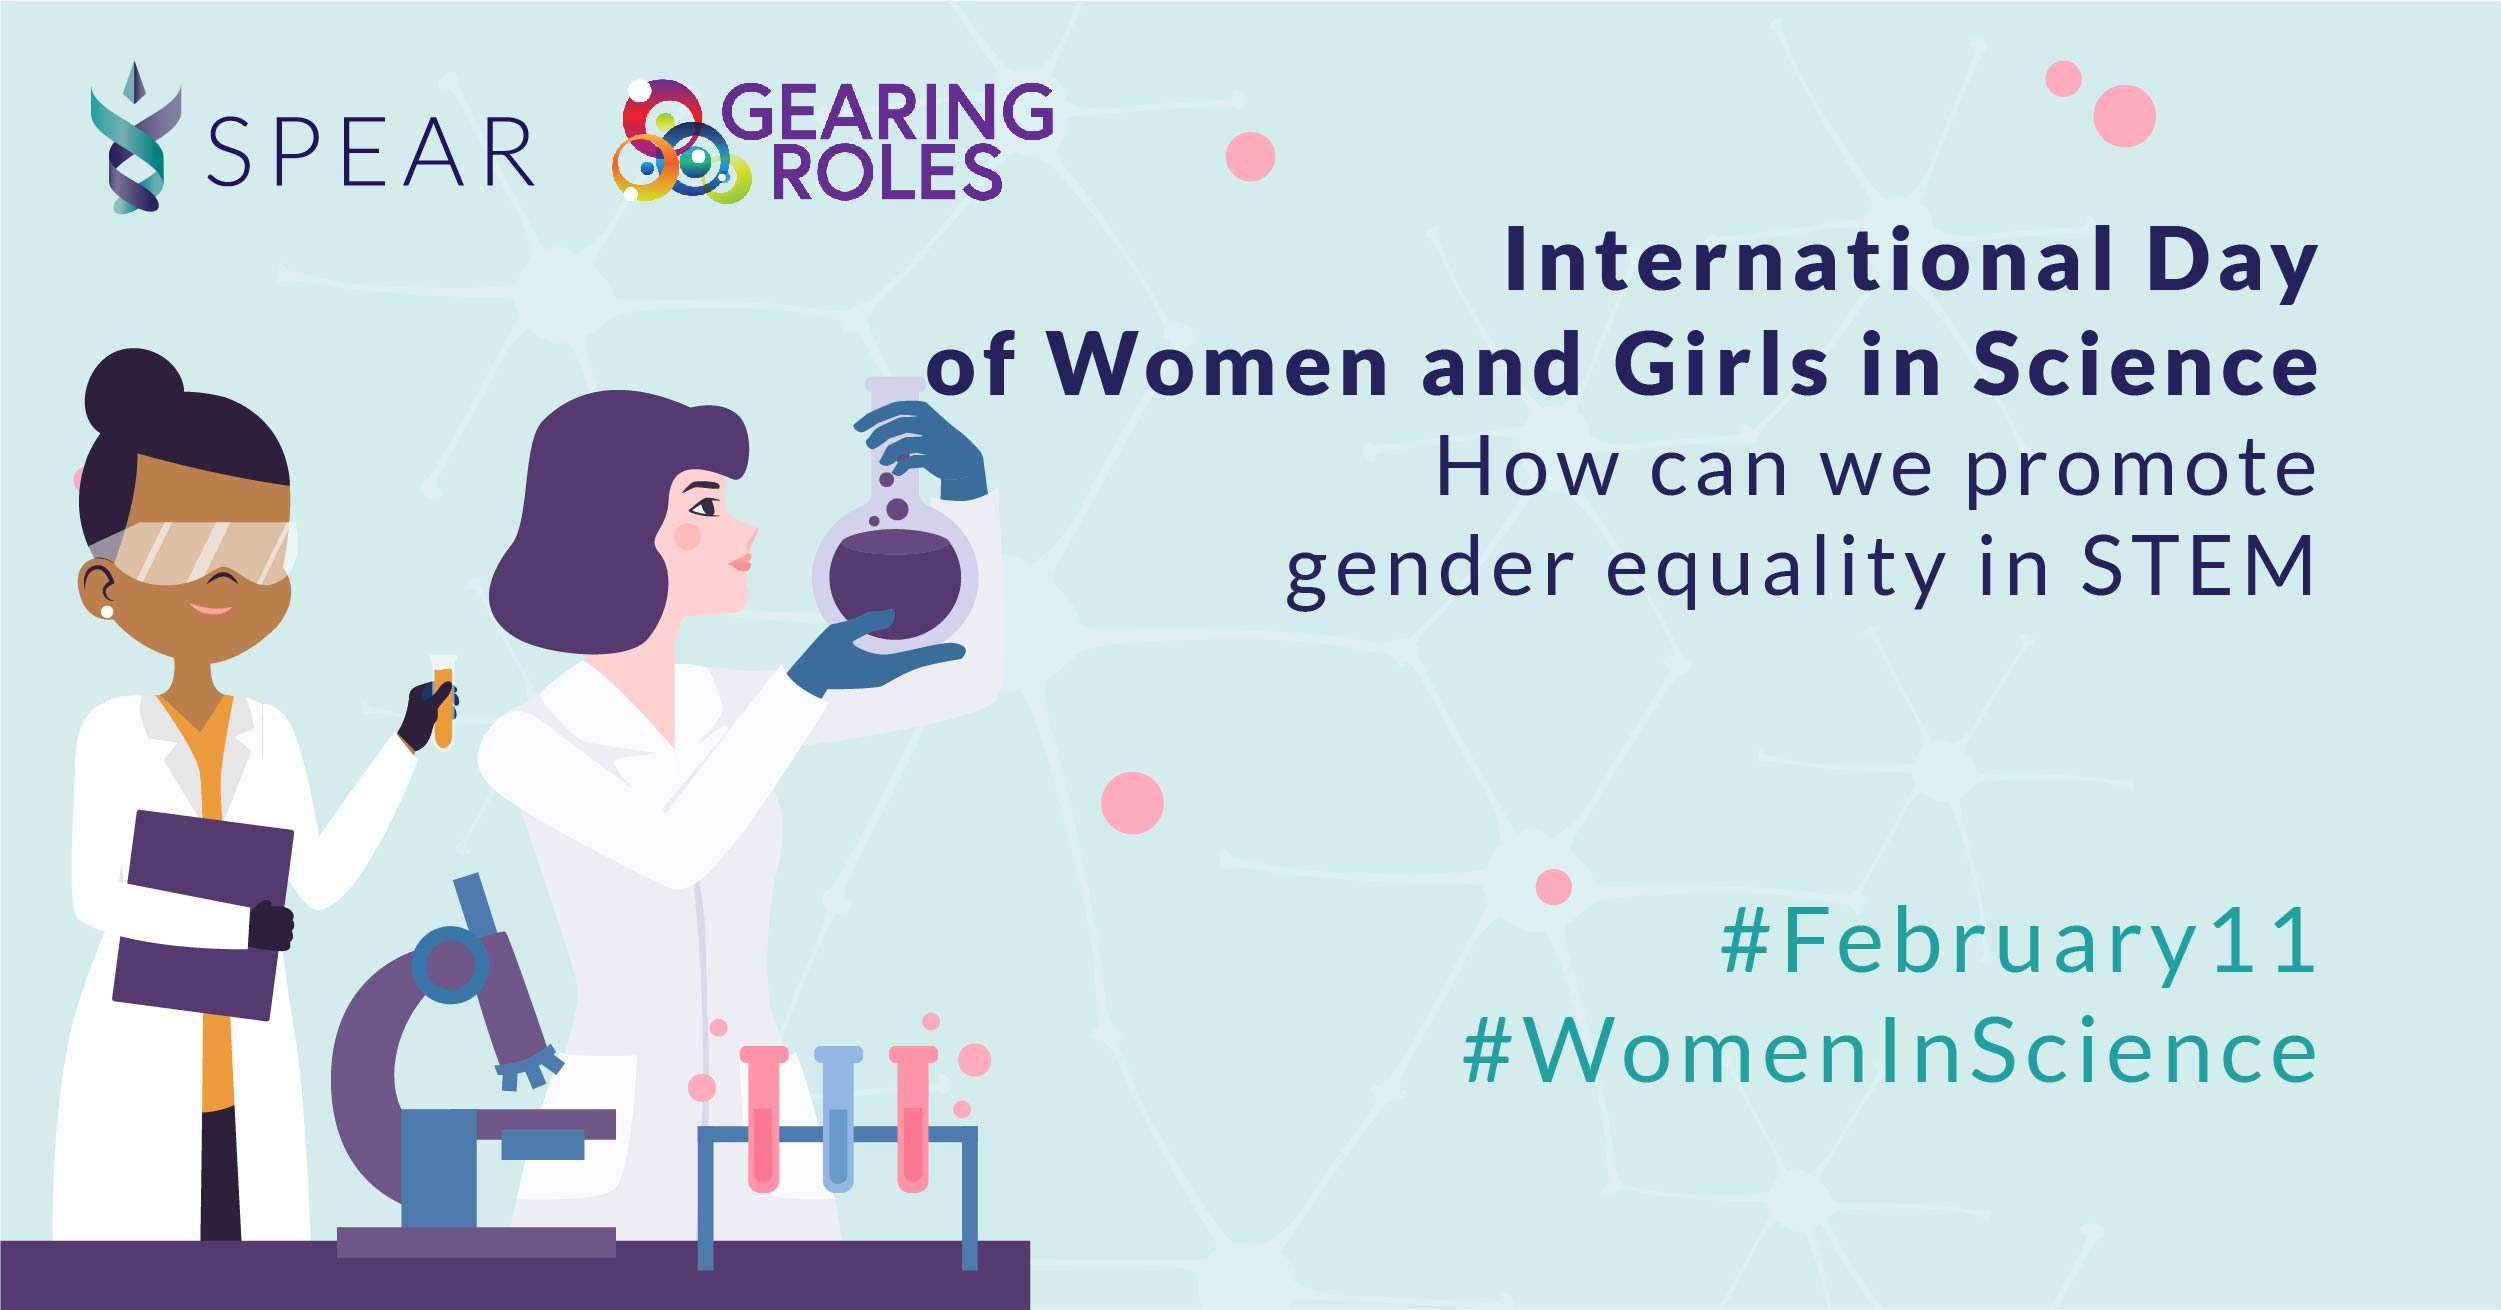 International Day of Women and Girls in Science: How can we promote gender equality in STEM